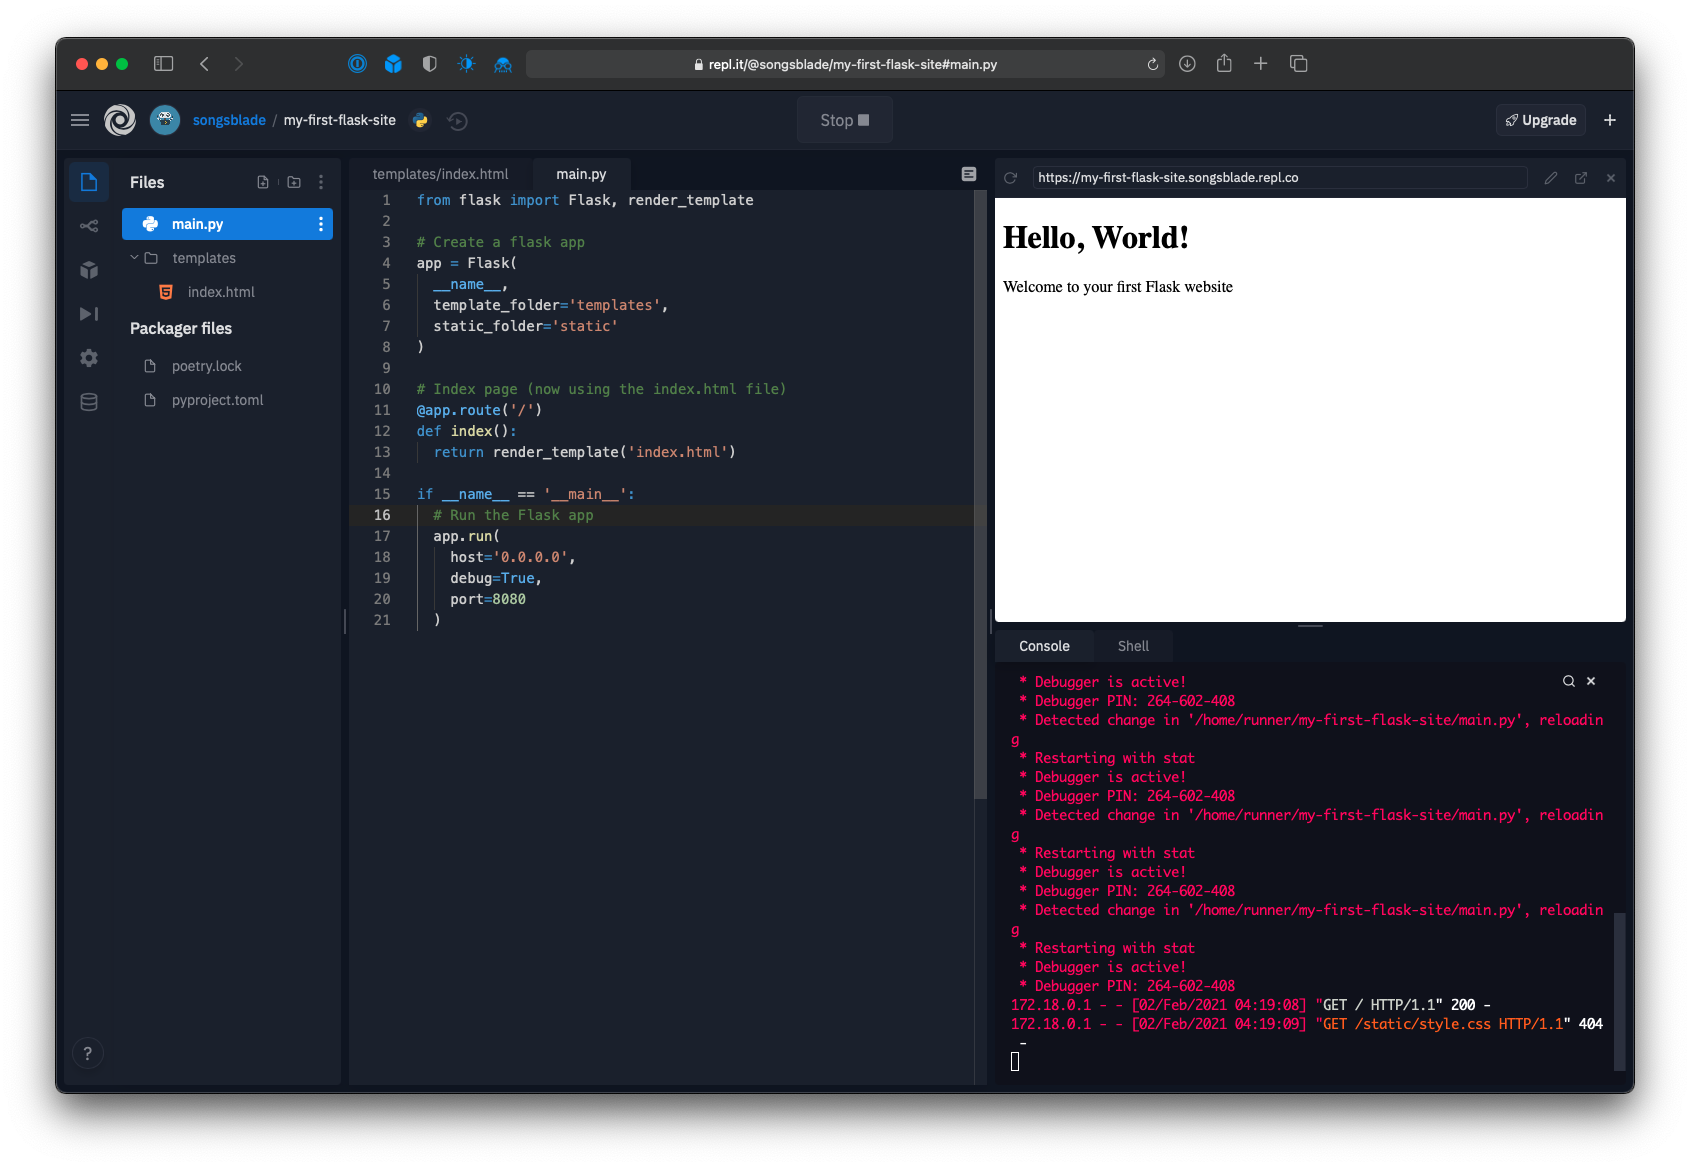 Repl editor showing the web app's new large header